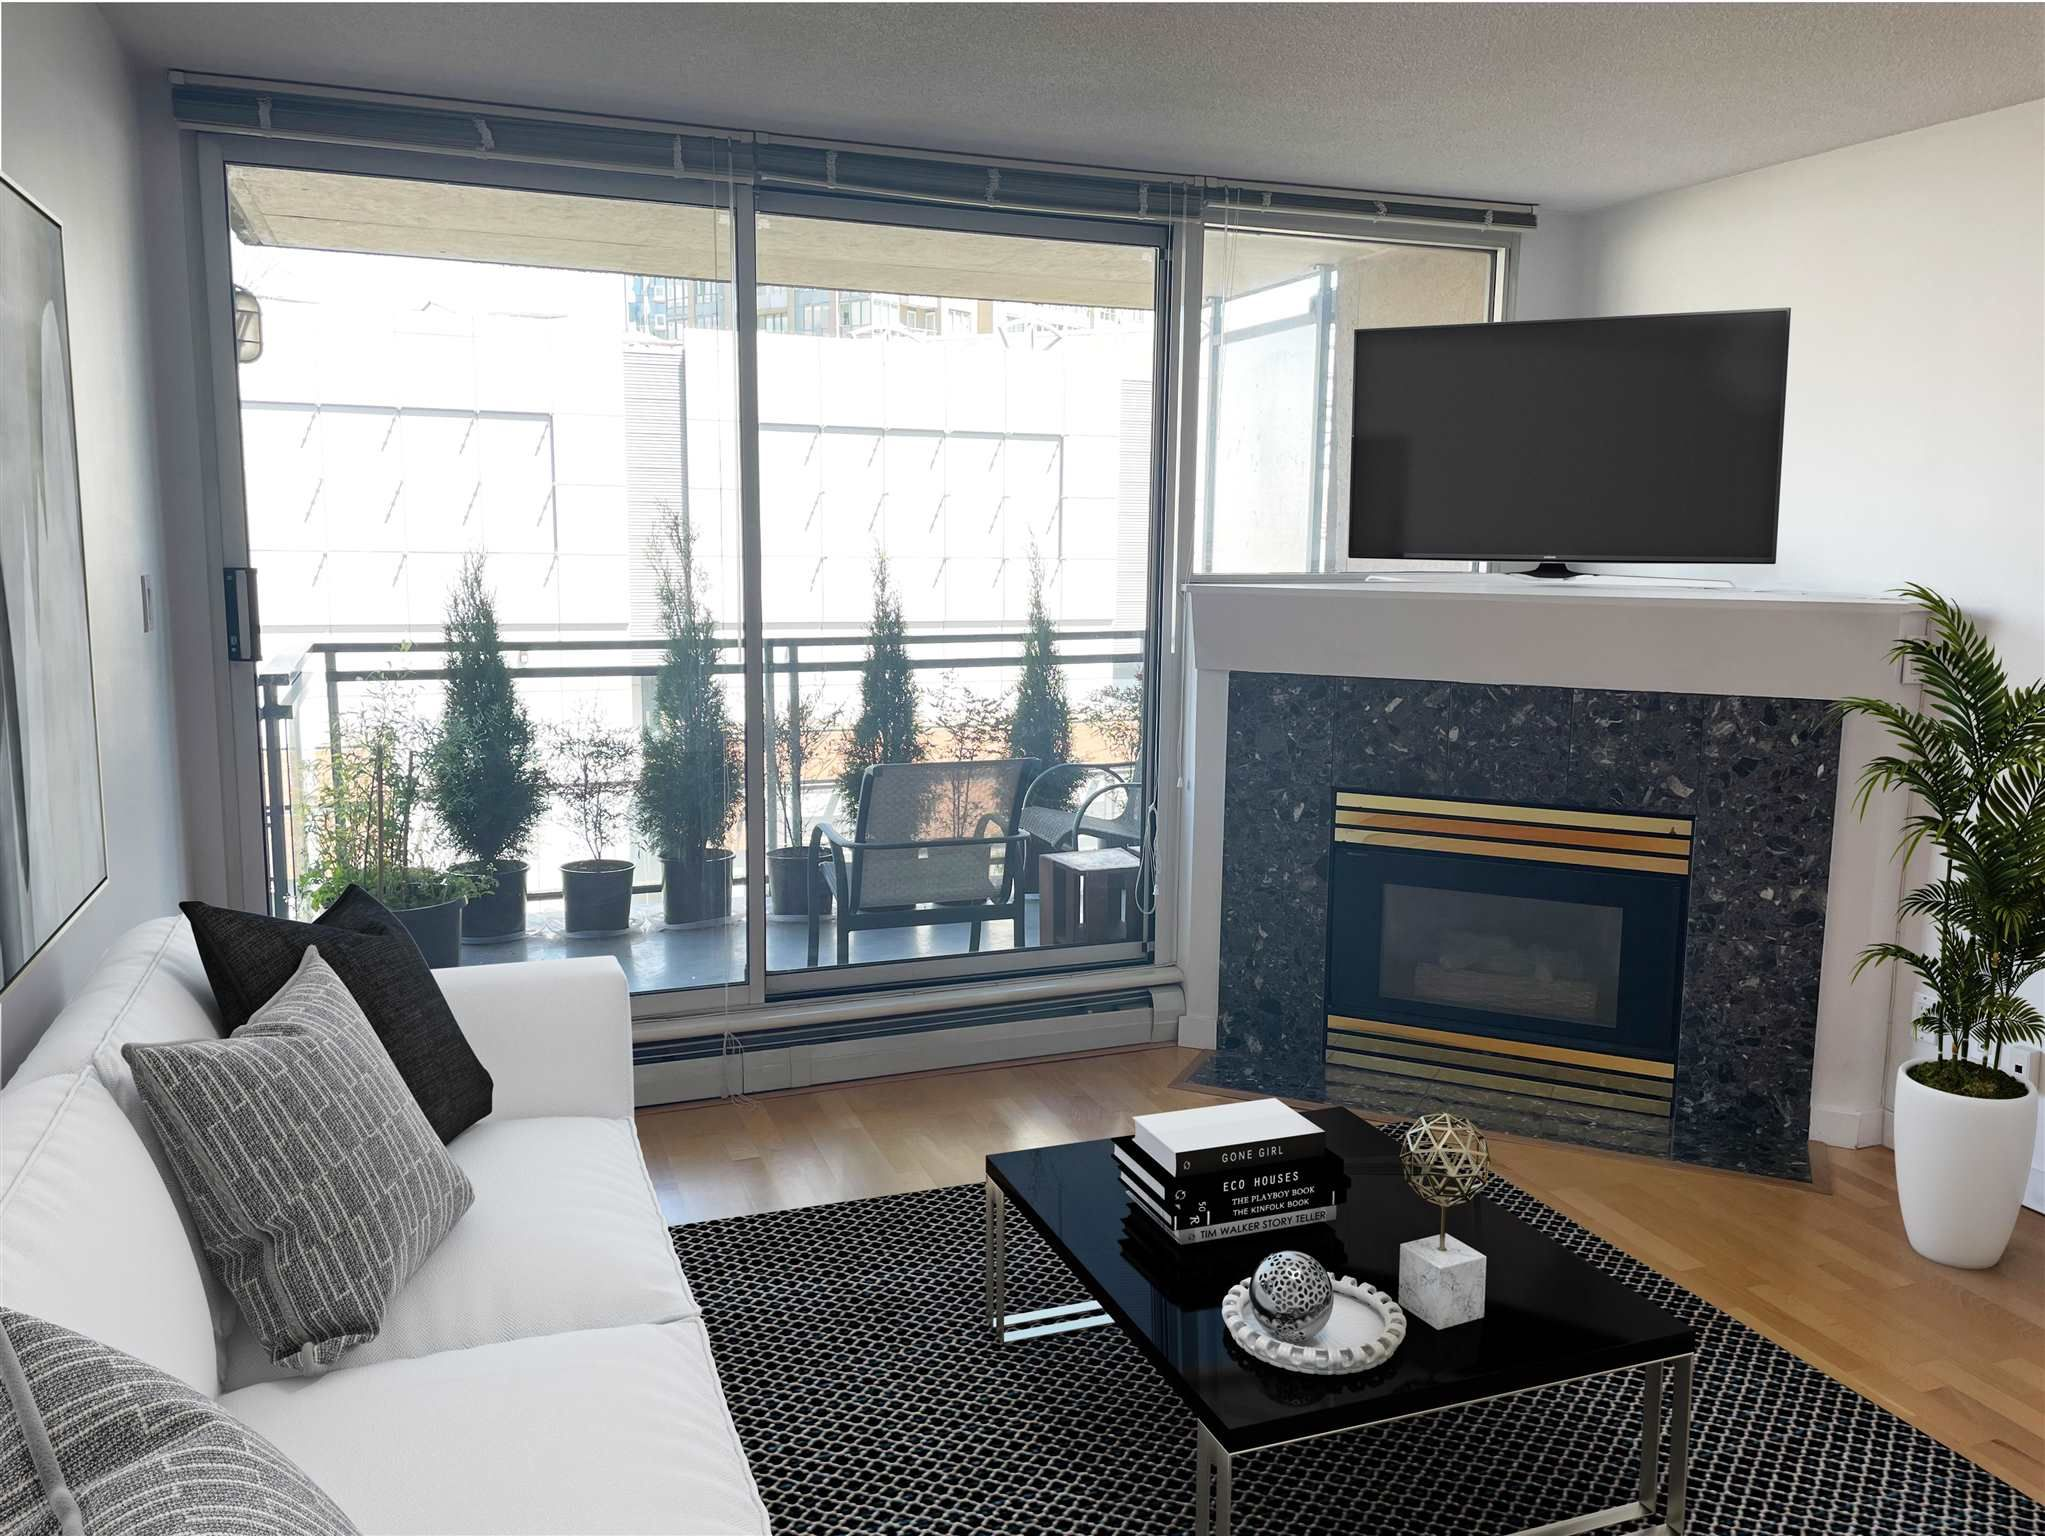 """Main Photo: 511 555 ABBOTT Street in Vancouver: Downtown VW Condo for sale in """"PARIS PLACE"""" (Vancouver West)  : MLS®# R2595361"""